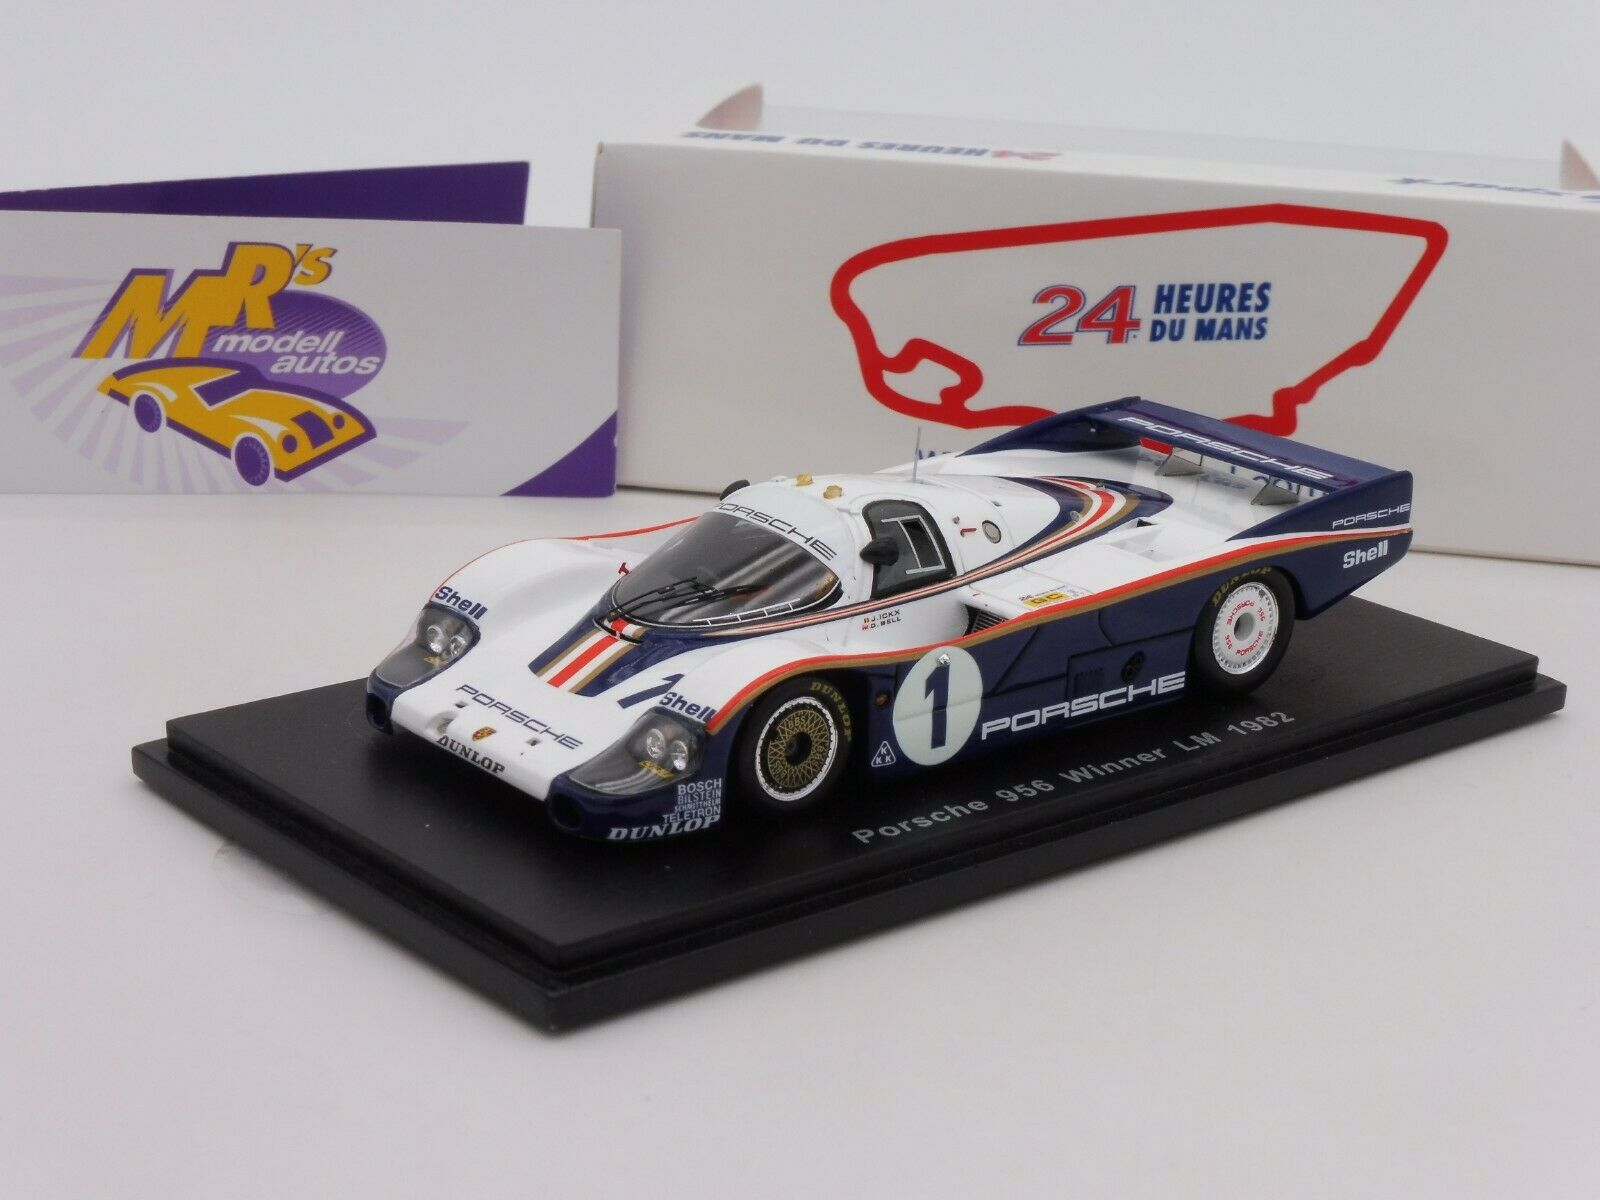 Spark 43LM82 PORSCHE 956 Winner 24h. LE Mans 1982 No. 1 in redhmans Design 1 43